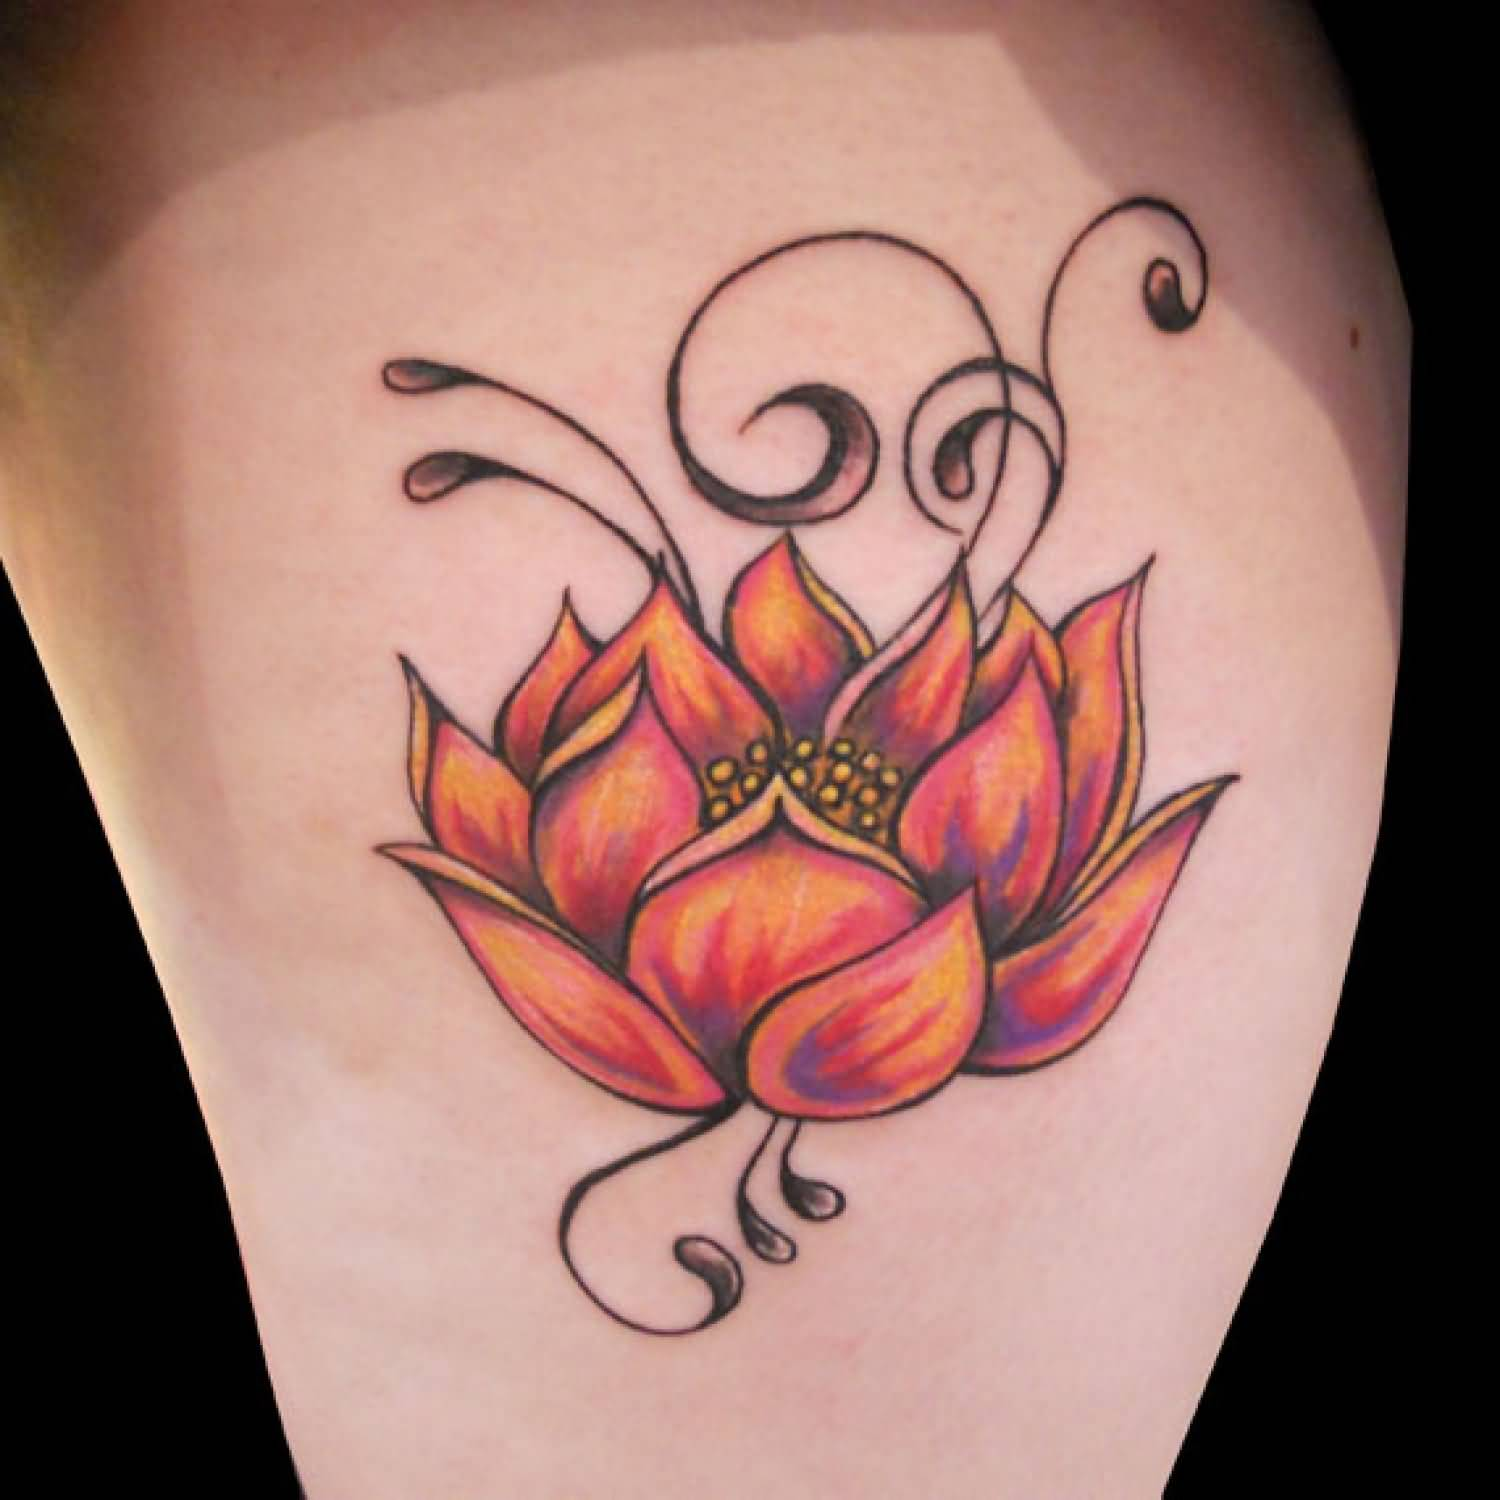 Lotus tattoo ideas and lotus tattoo designs page 4 for Flower tattoo arm